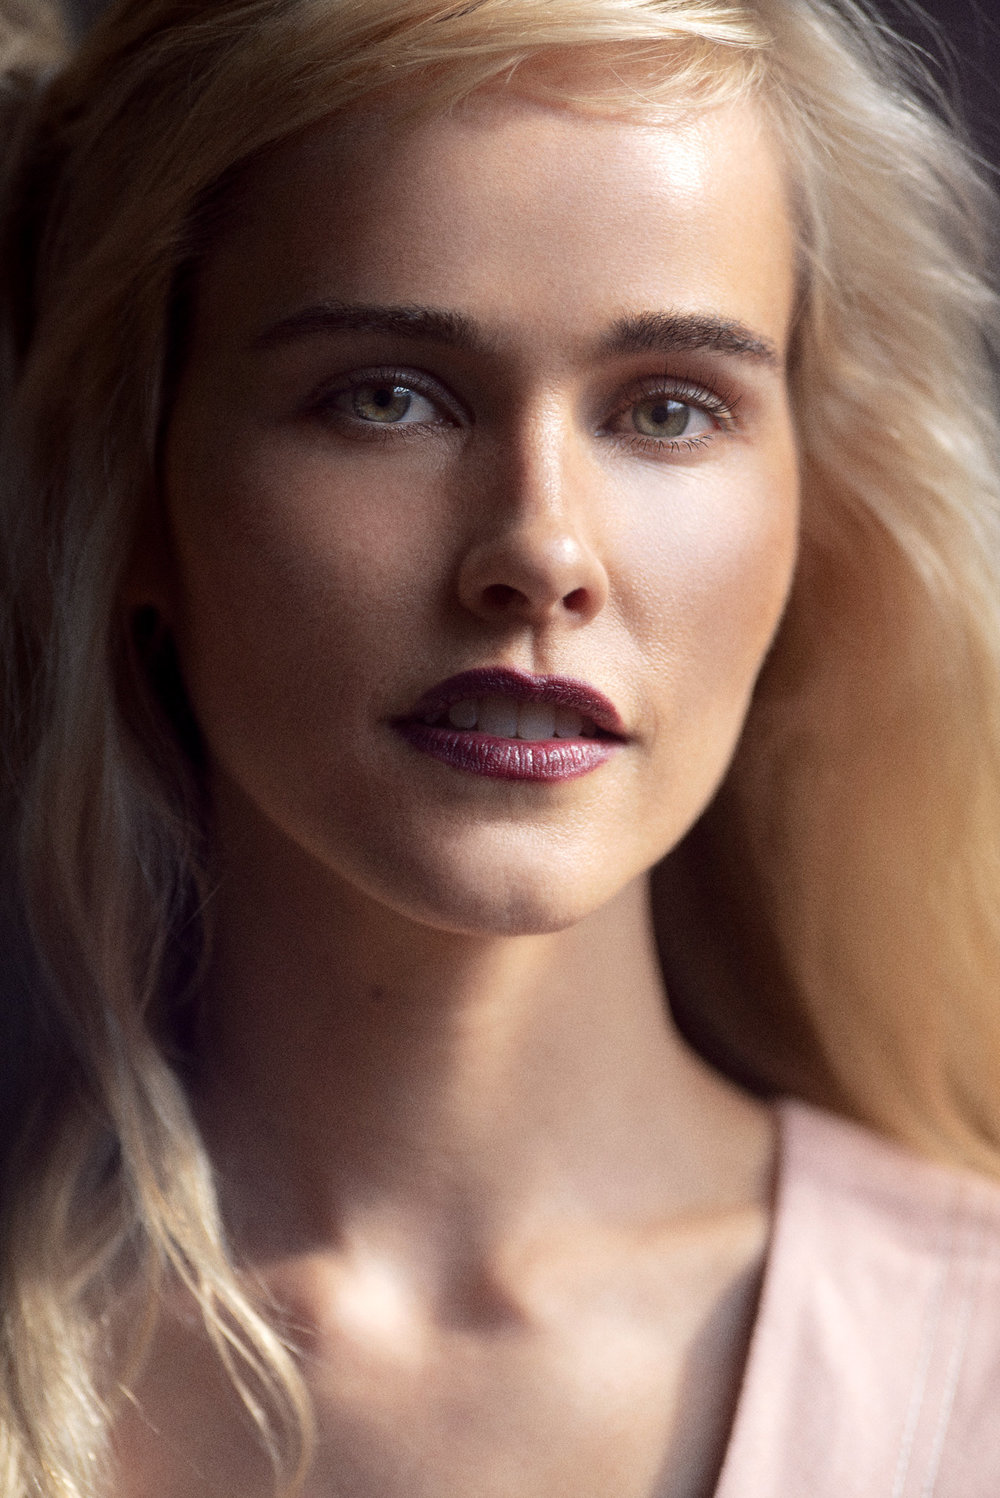 LEE MATHEWS R'19 - BEAUTY & DETAILS; Lee Mathews Resort '19 for Remix | Photographs by Dave Blake. Cover beauty Isabel Lucas photographed in the window light after the show #mbfwa #resort19